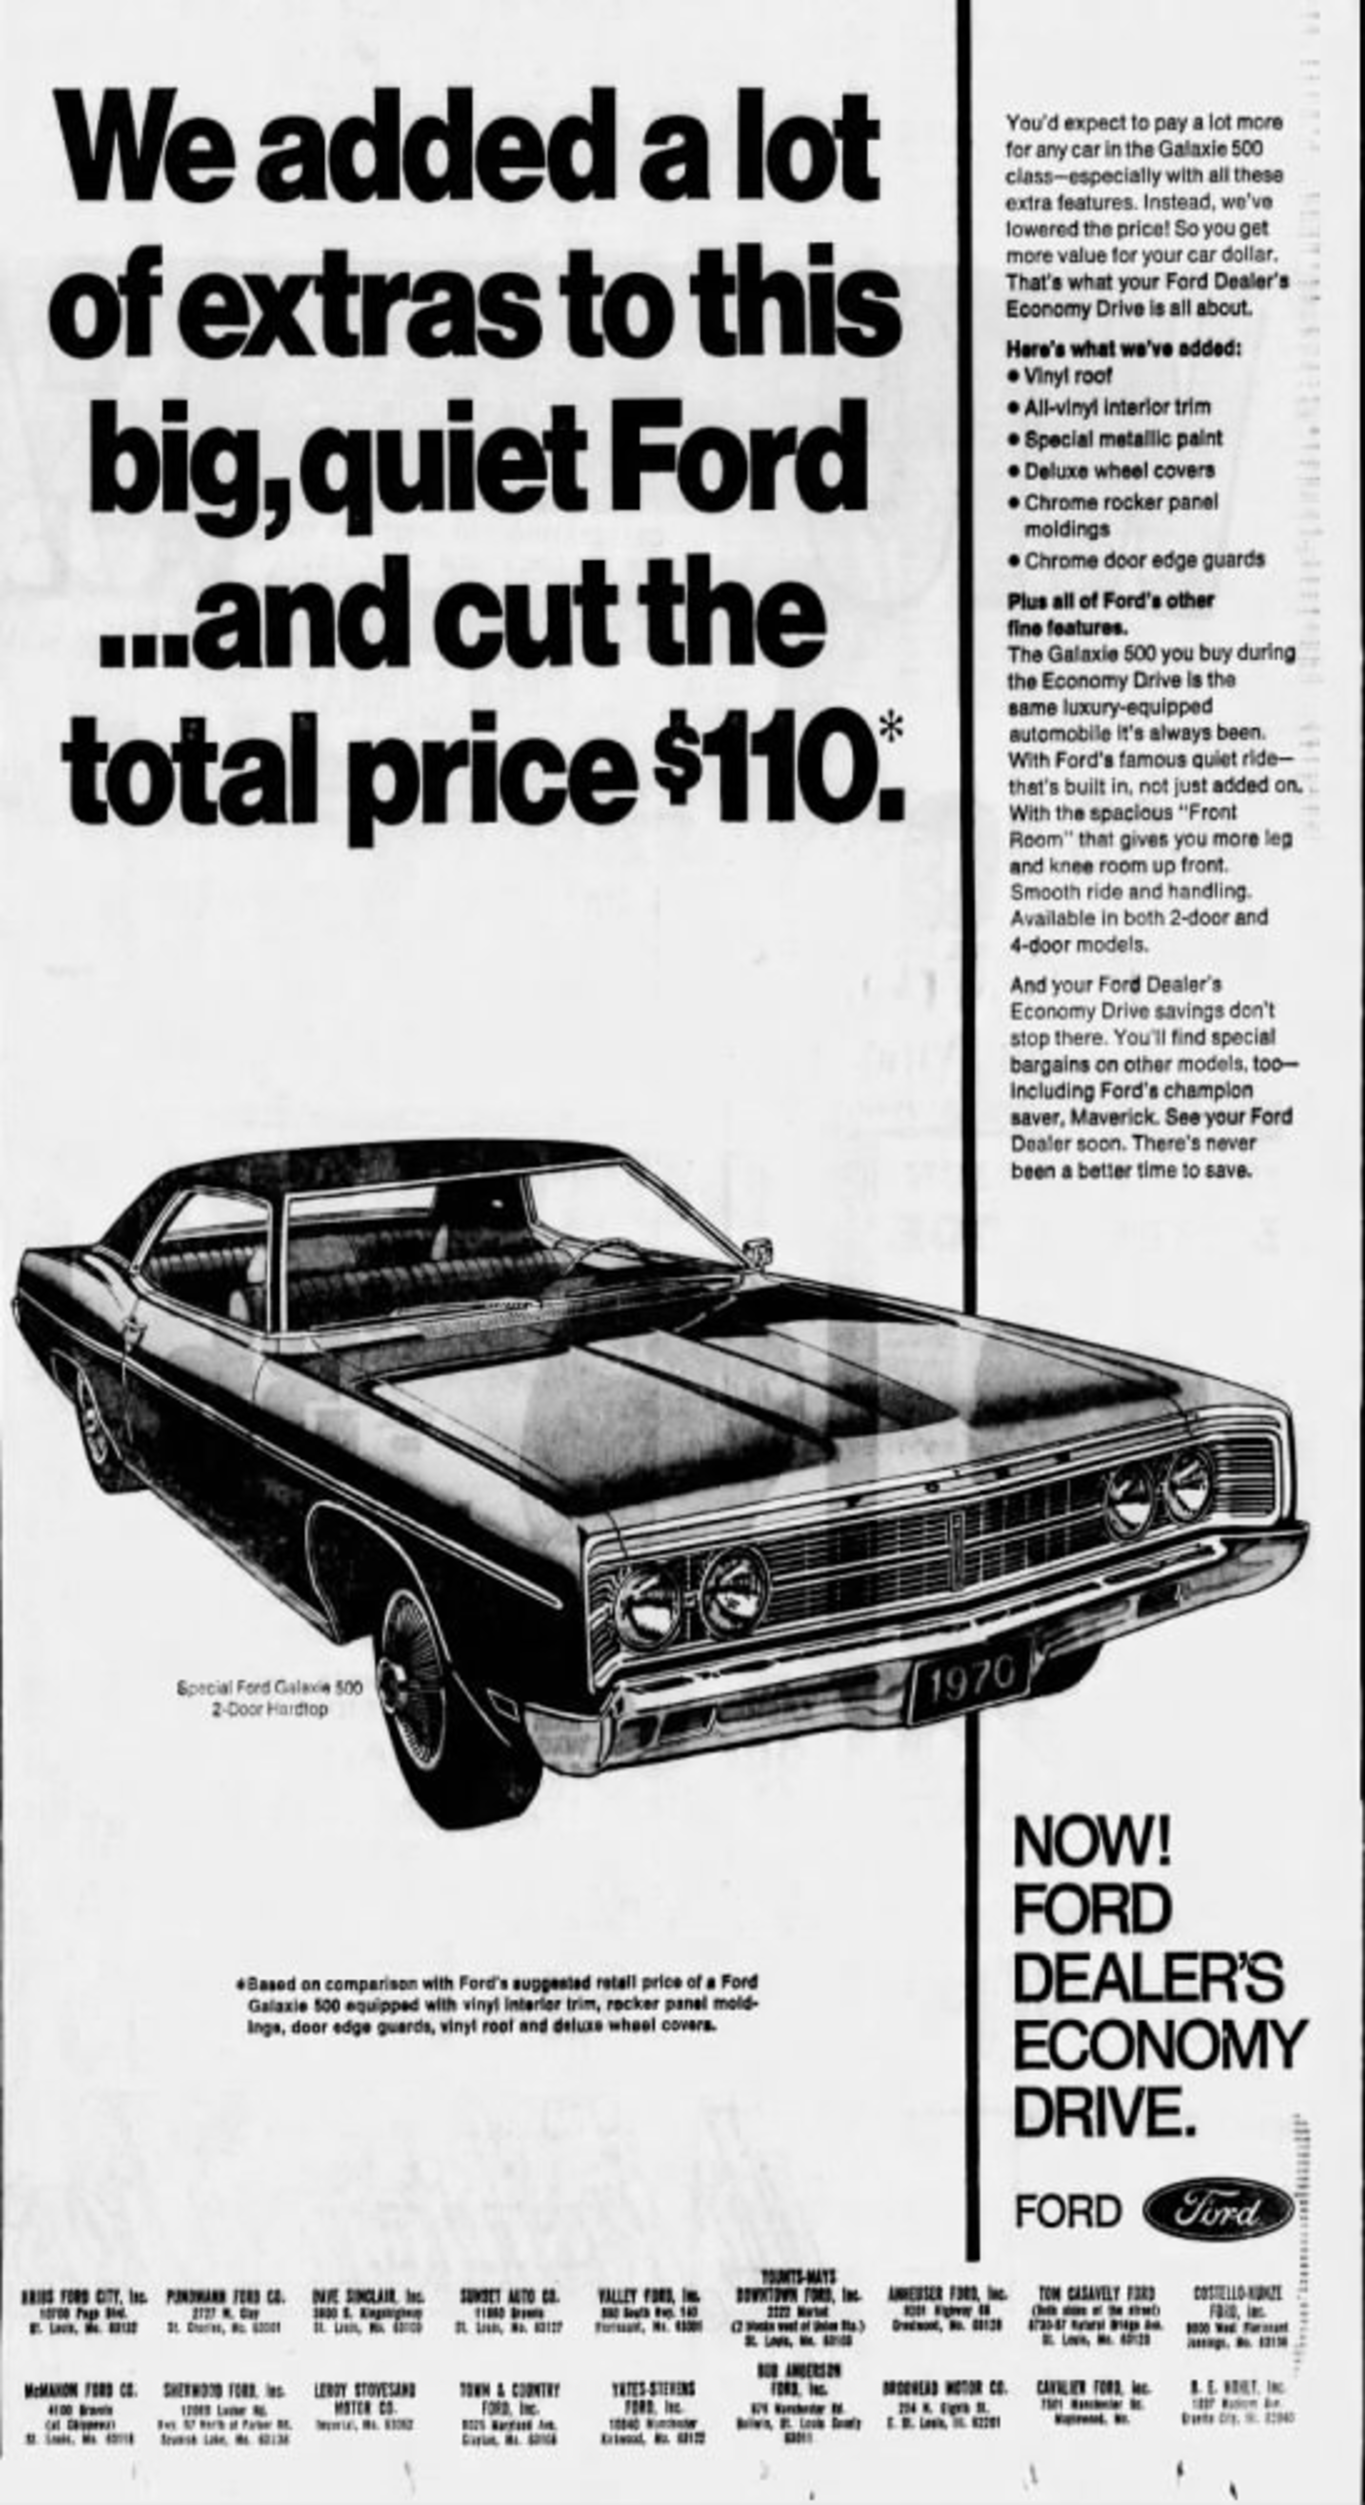 1970 Ford Galaxie 500 Ad In 2020 Used Car Lots Ads Ford